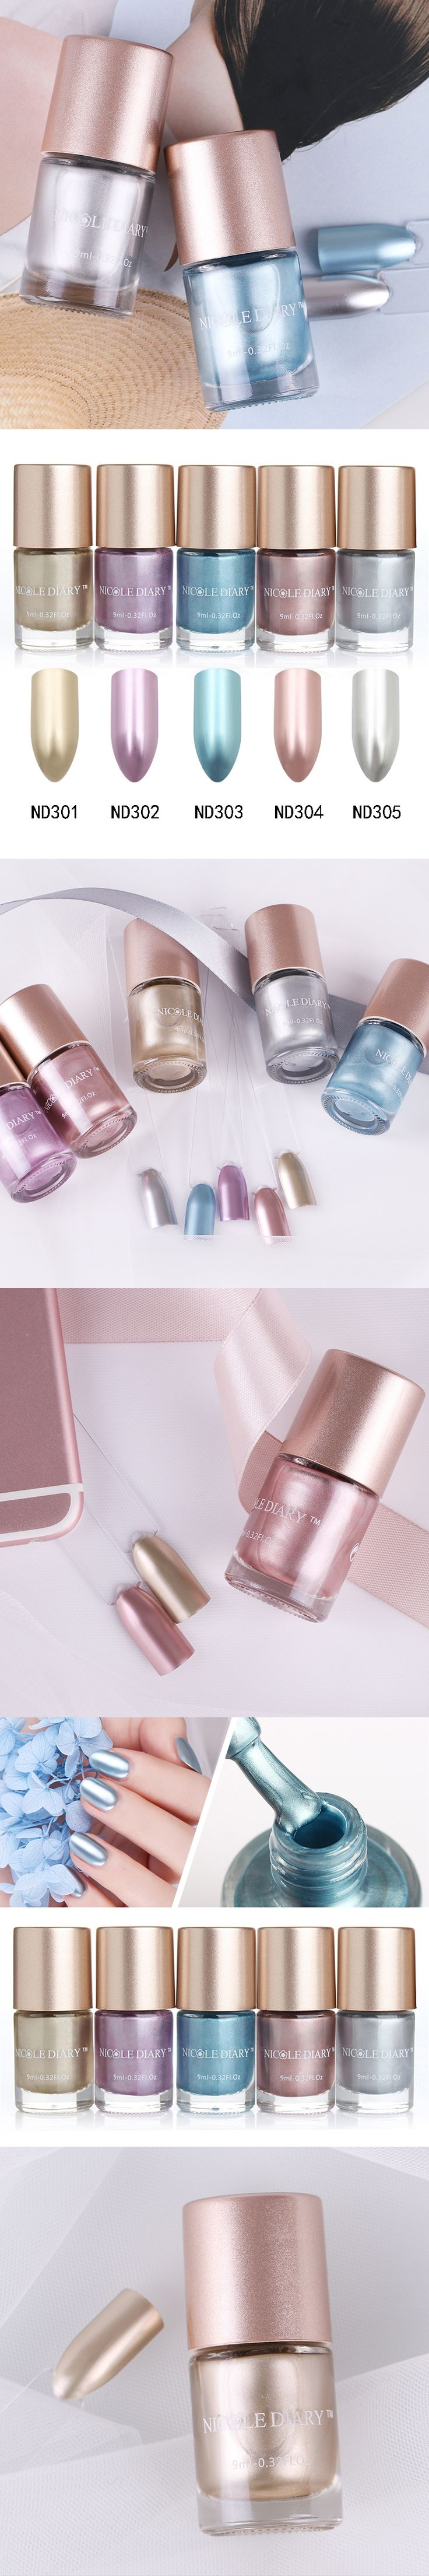 NICOLE DIARY Metallic Nail Polish Mirror Effect Lacquer Varnish Shiny Metal 5 Colors Rose Gold Spray Nagellak Vernis A Ongle